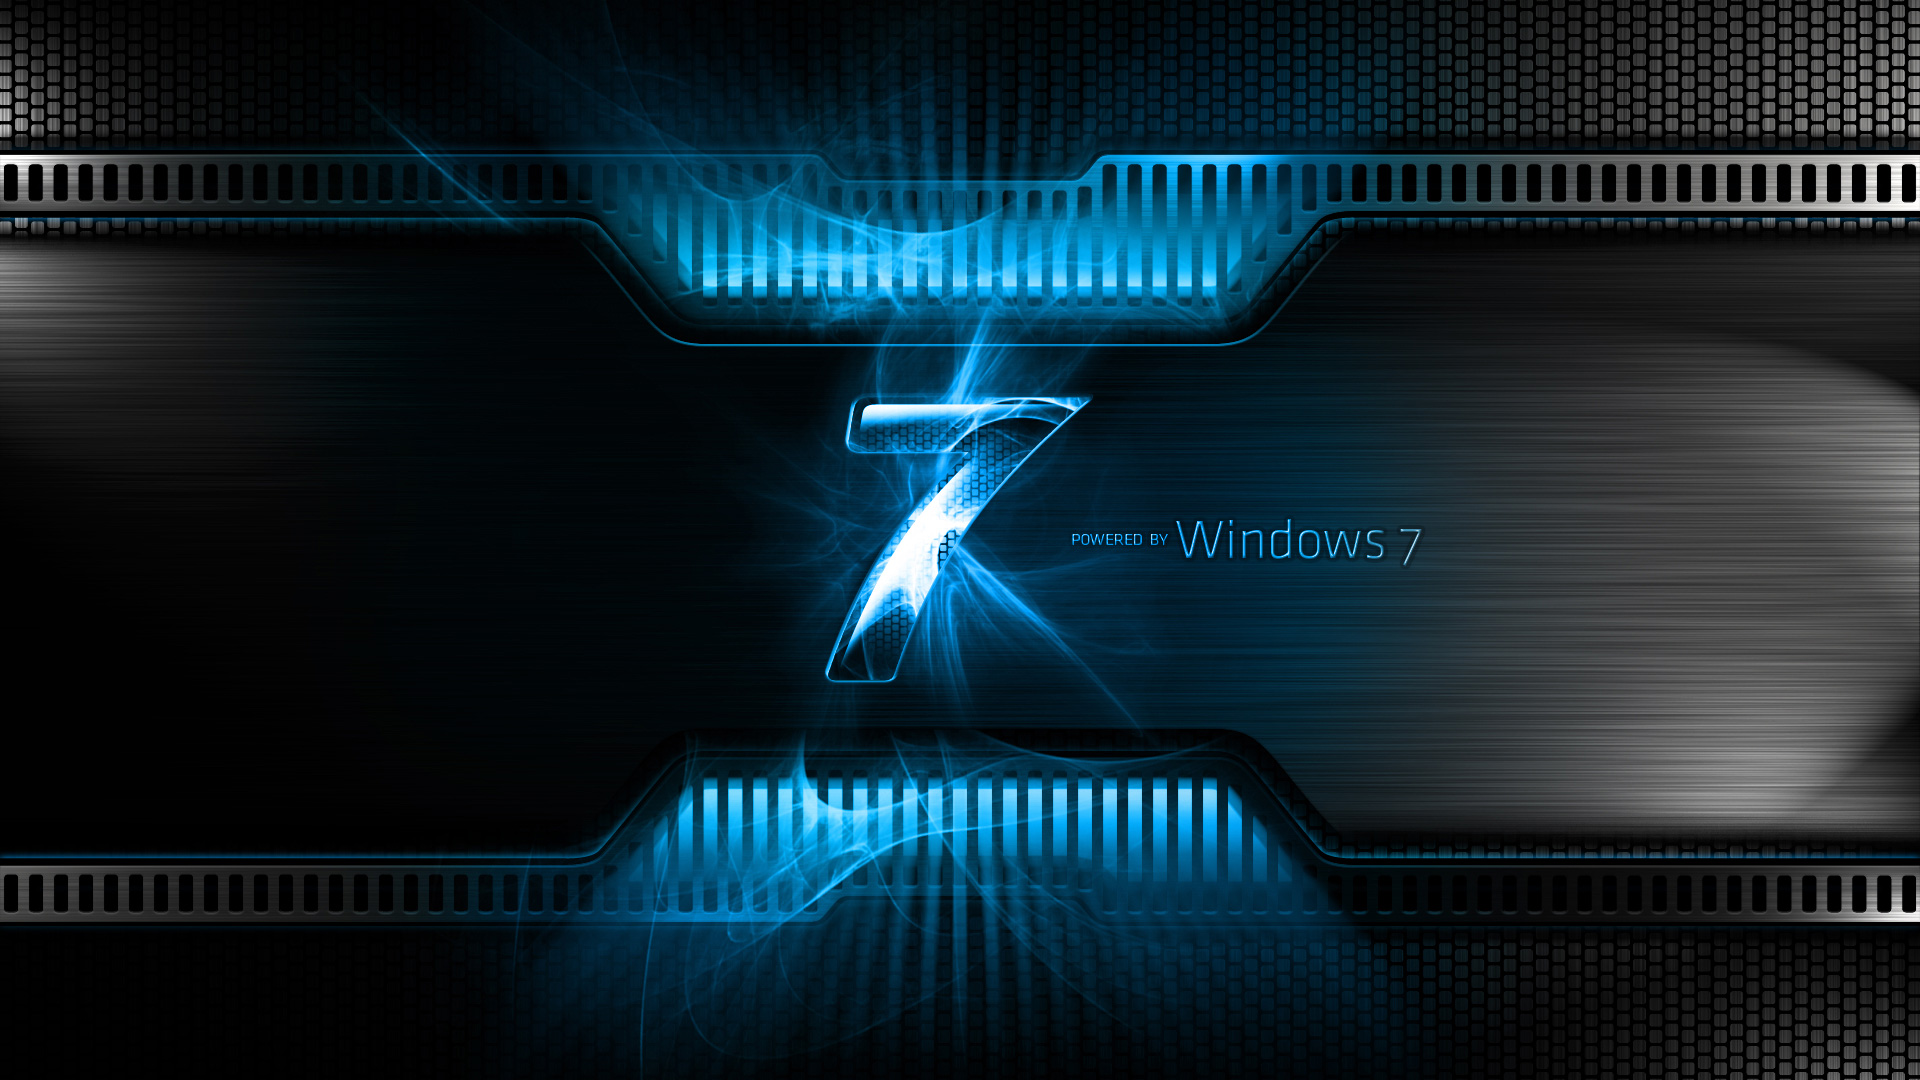 Windows 7 HD wallpaper 7 1920x1080